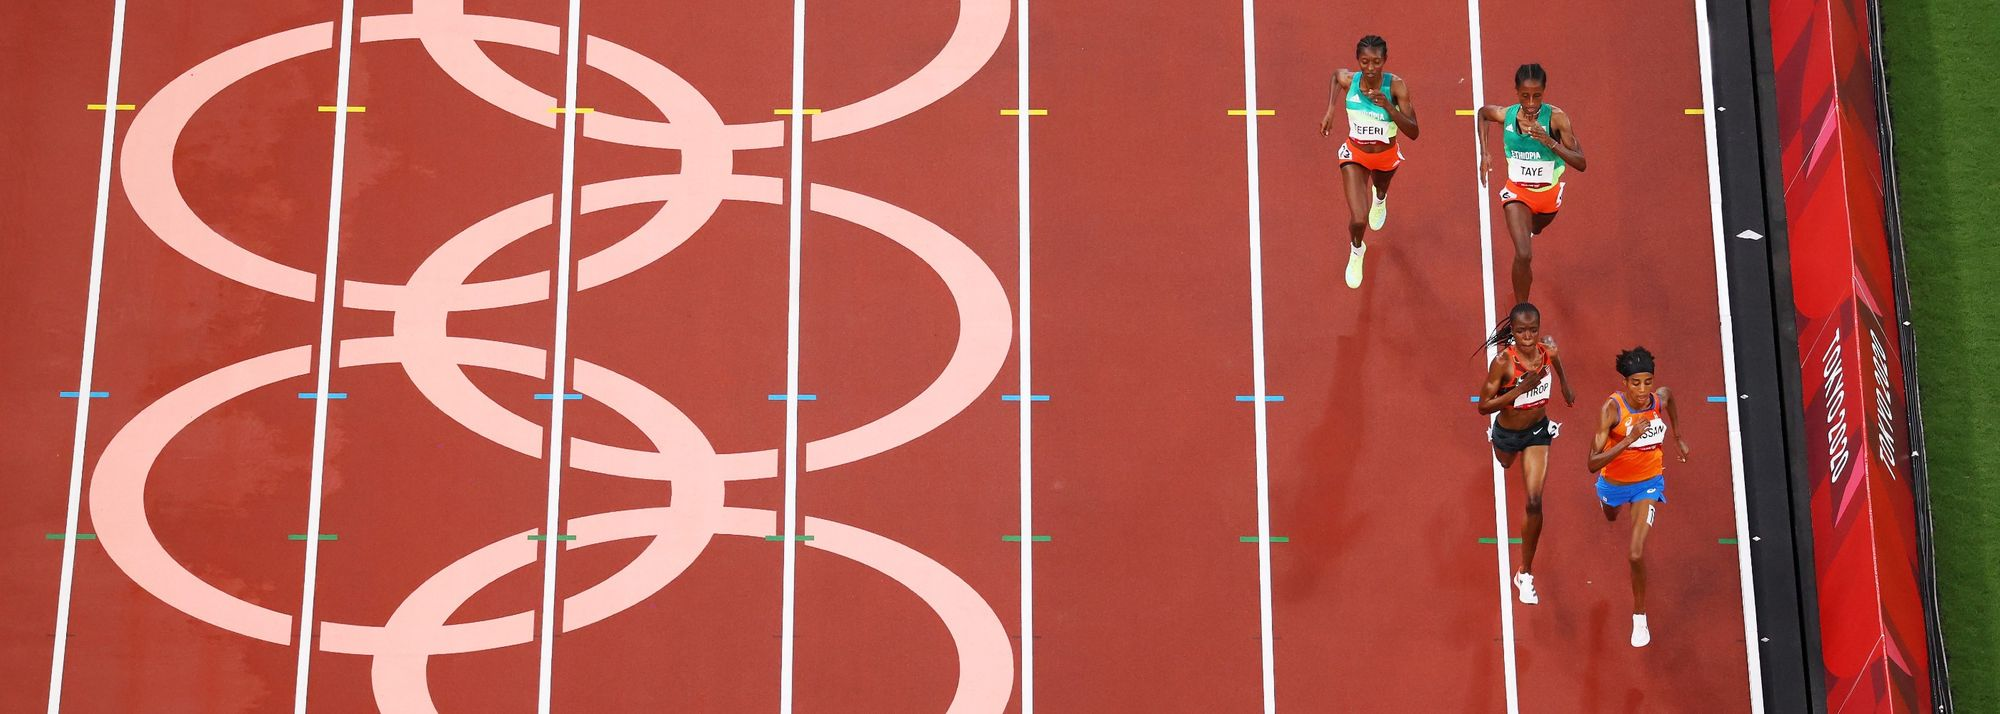 Monday has never looked so good! Five finals highlight day four of the athletics at the Tokyo 2020 Olympic Games.